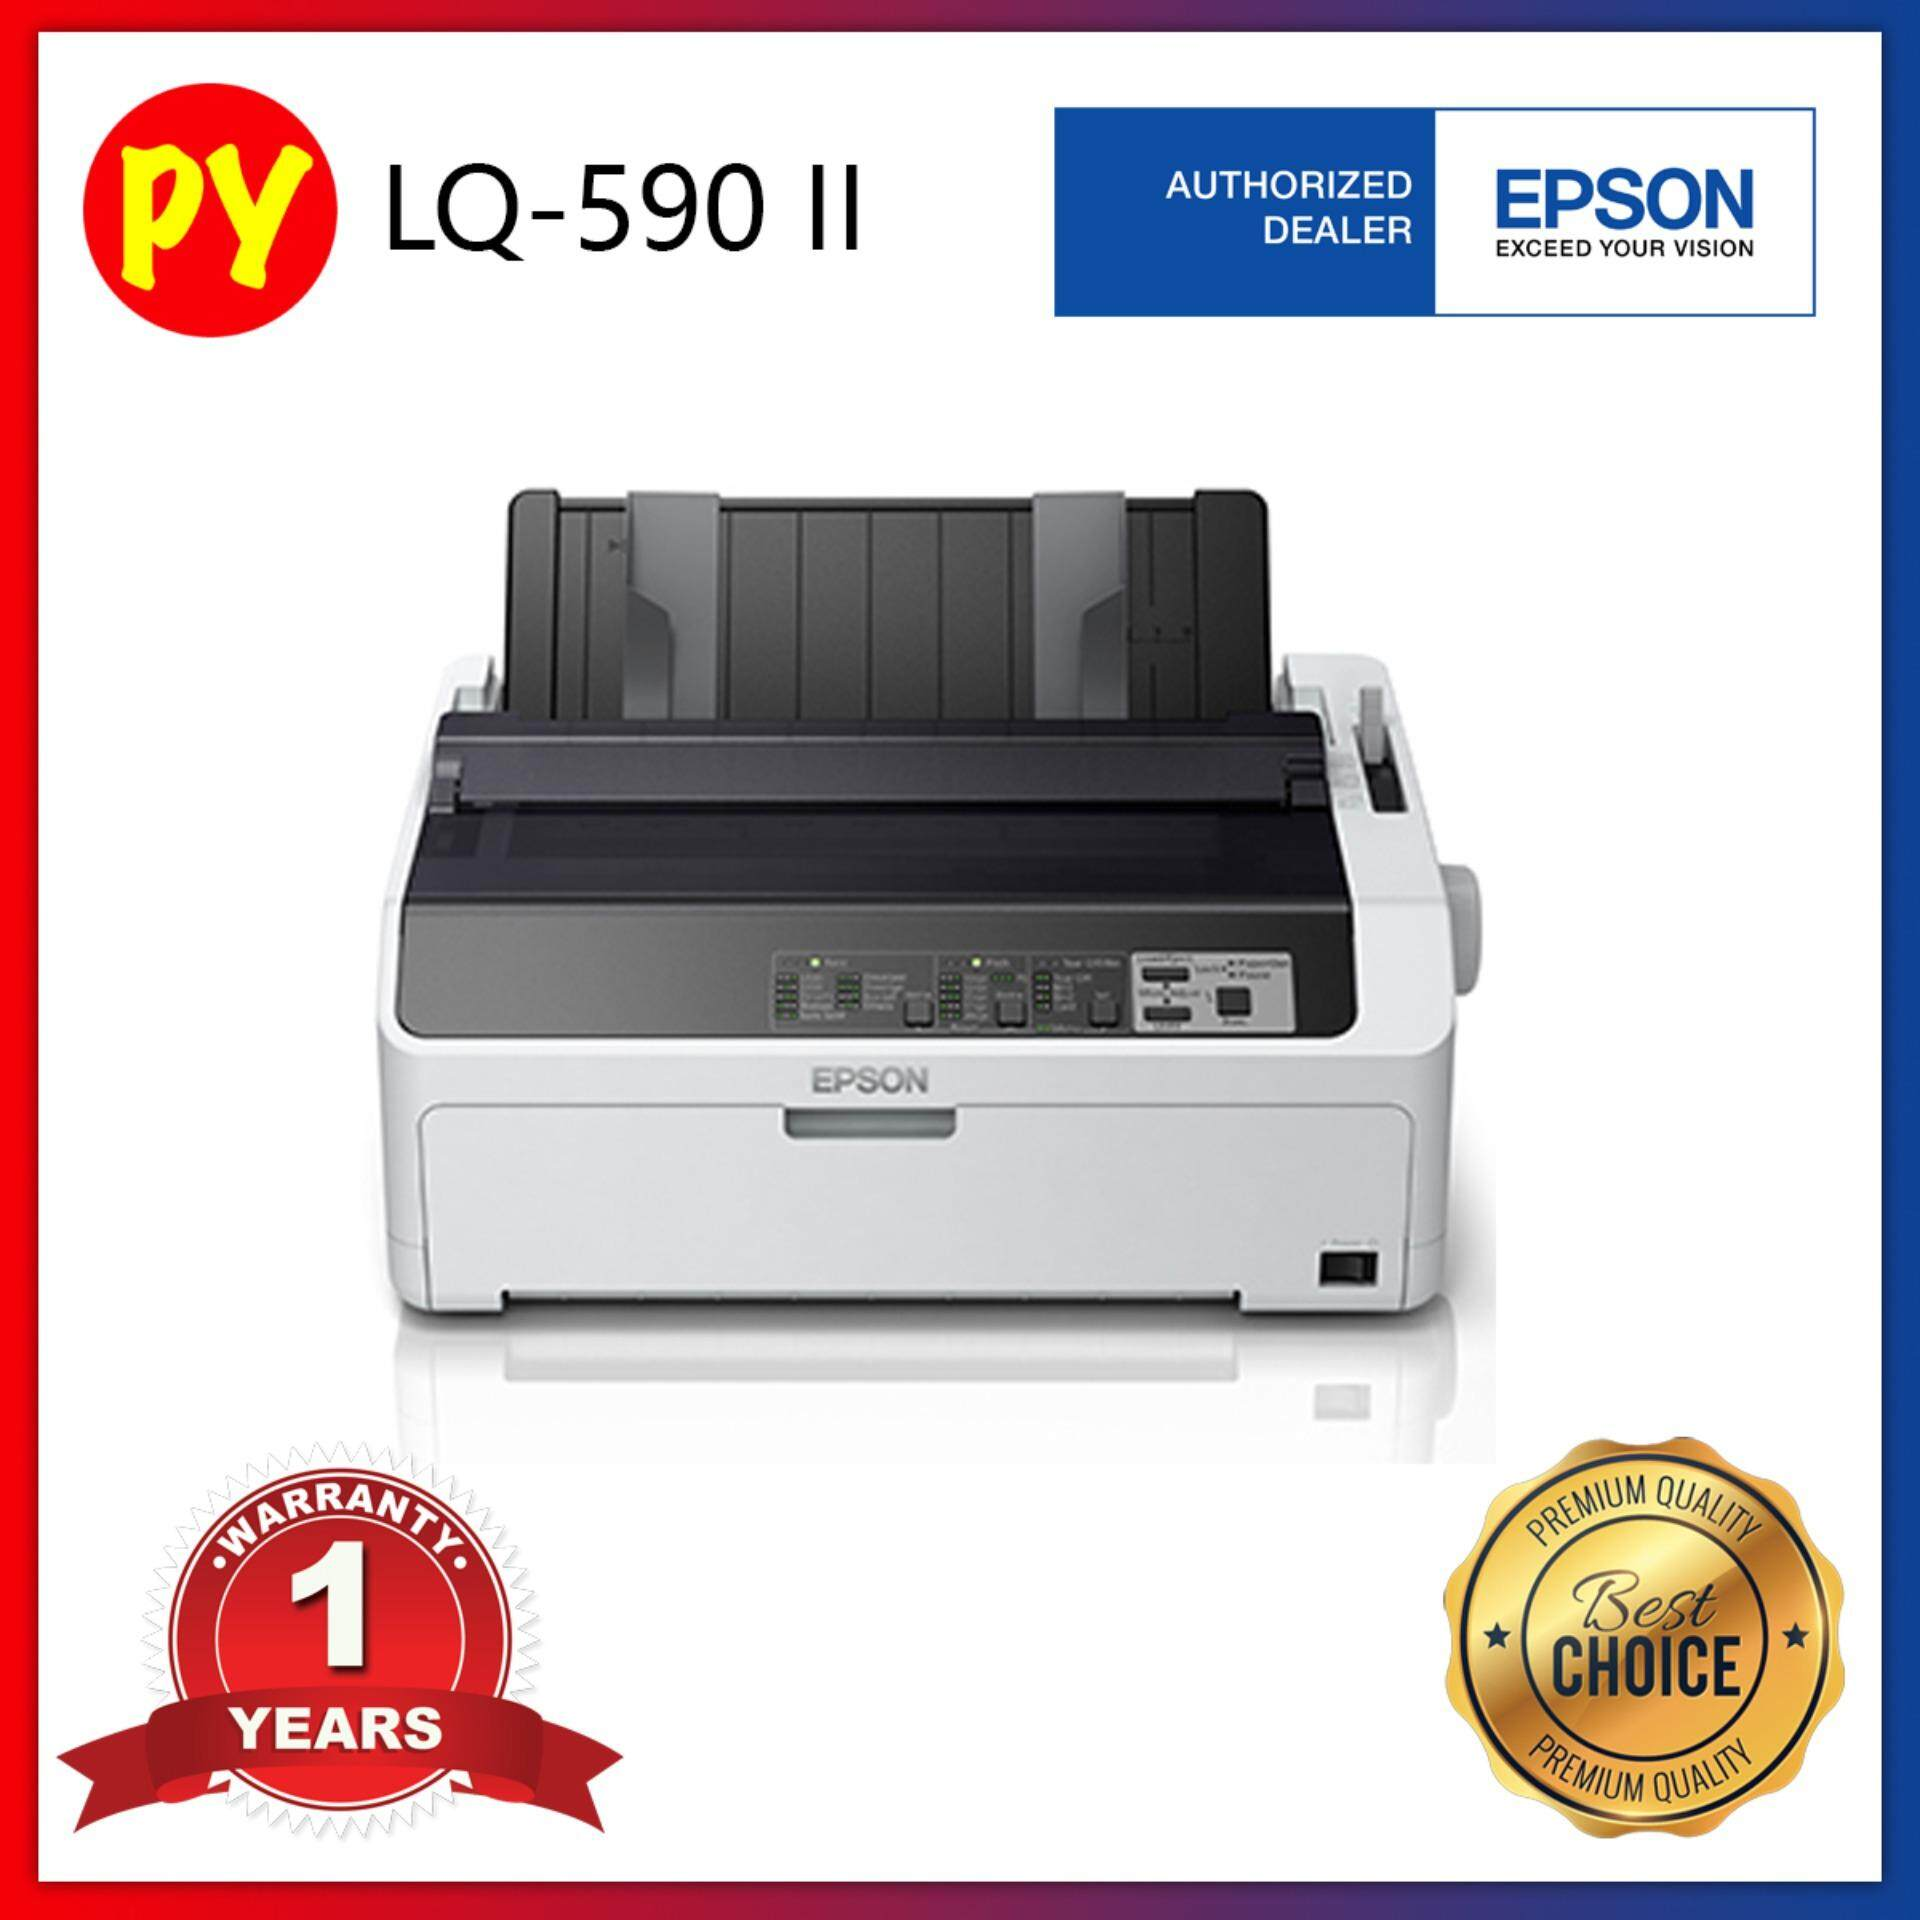 Epson Dot Matrix Printer Price In Malaysia Best Kabel Head Lx310 Original New Lq 590 Ii